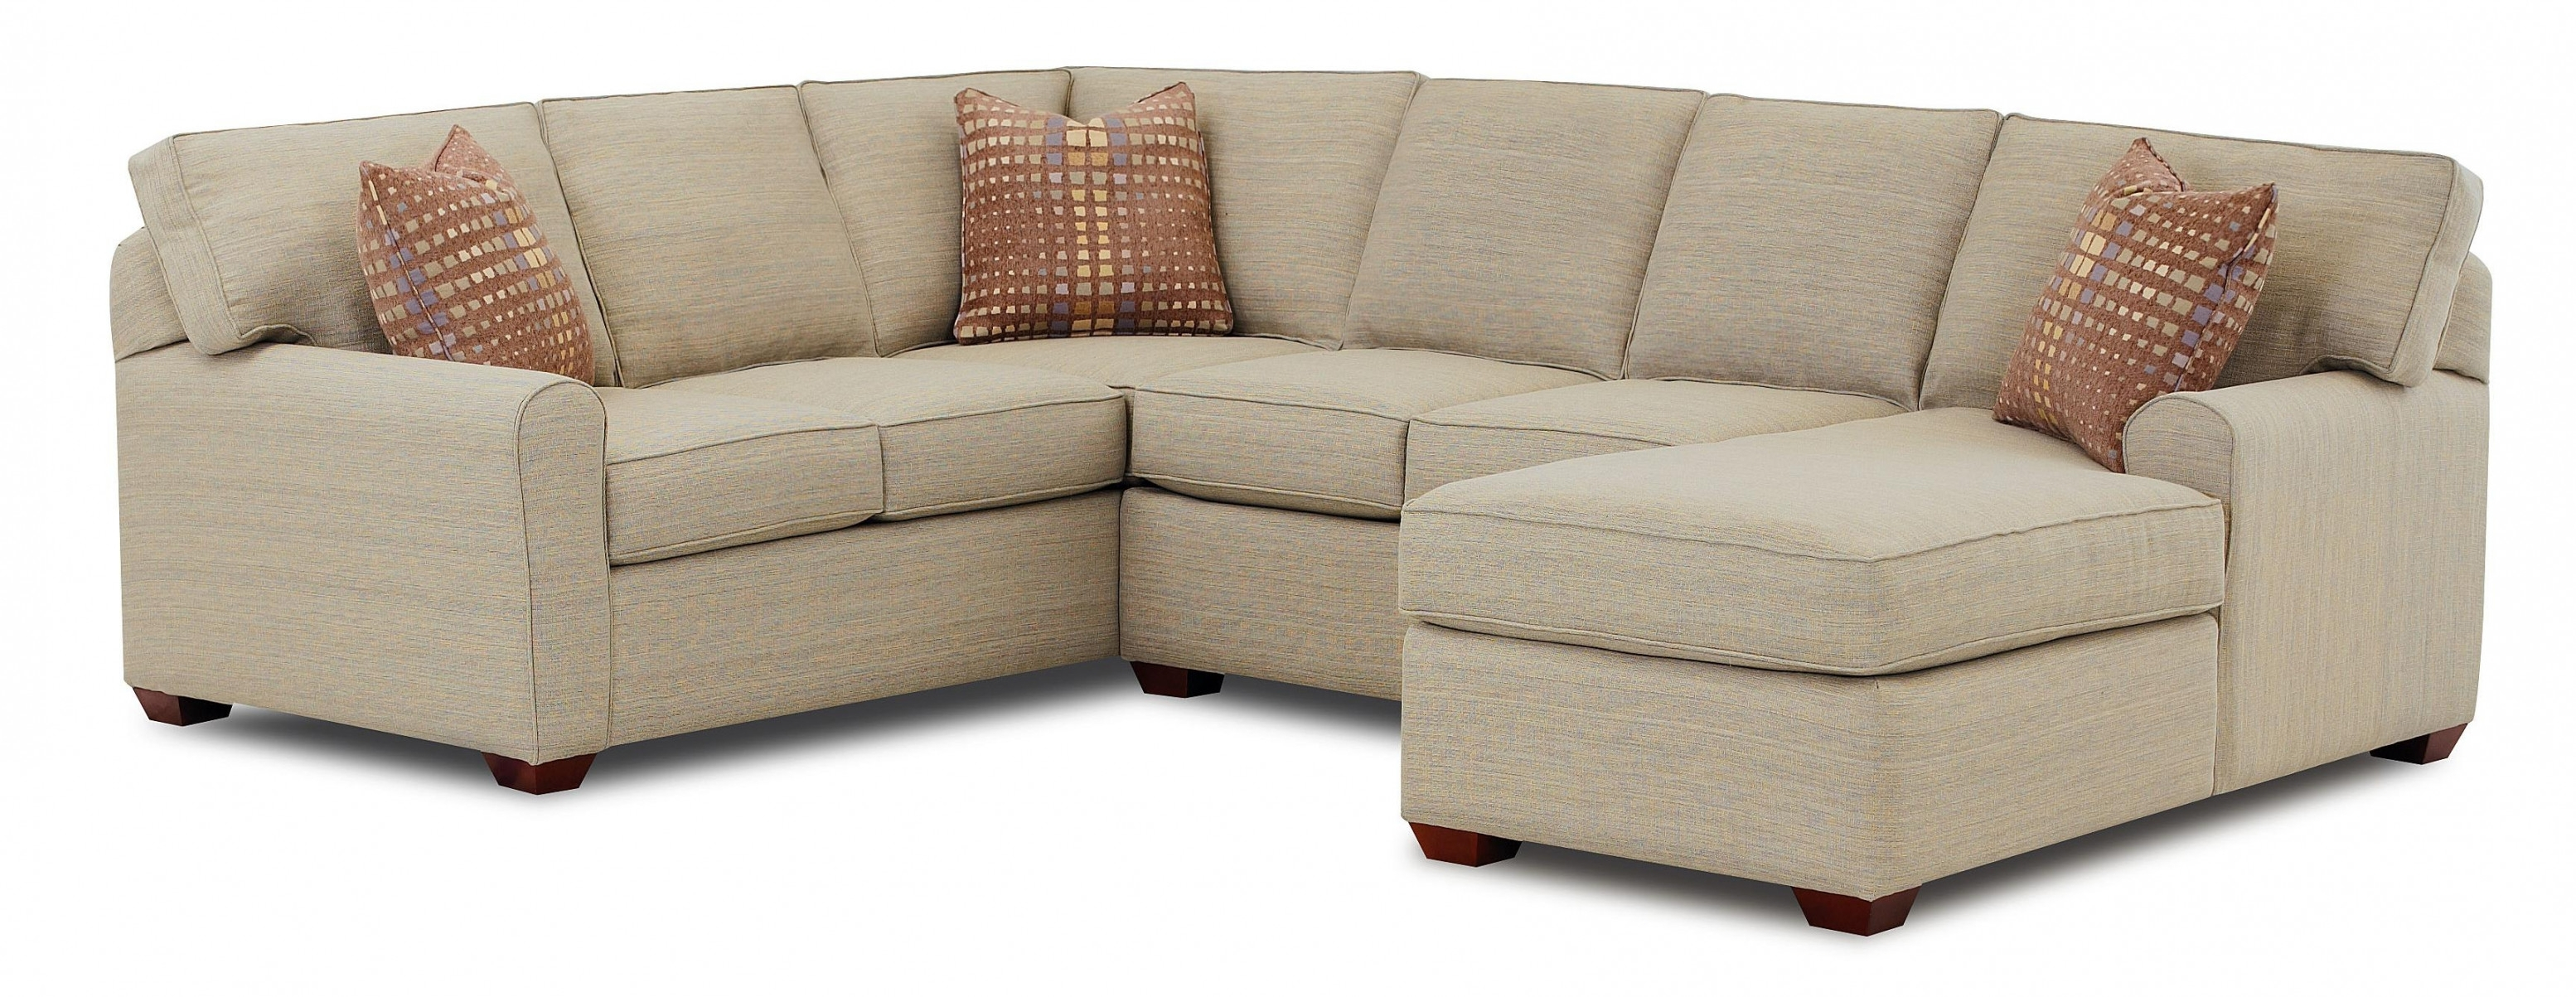 Sofas : Extra Large Sectional Sofas With Chaise Chaise Bed | Home With Sectional Sofas With Chaise (View 12 of 15)